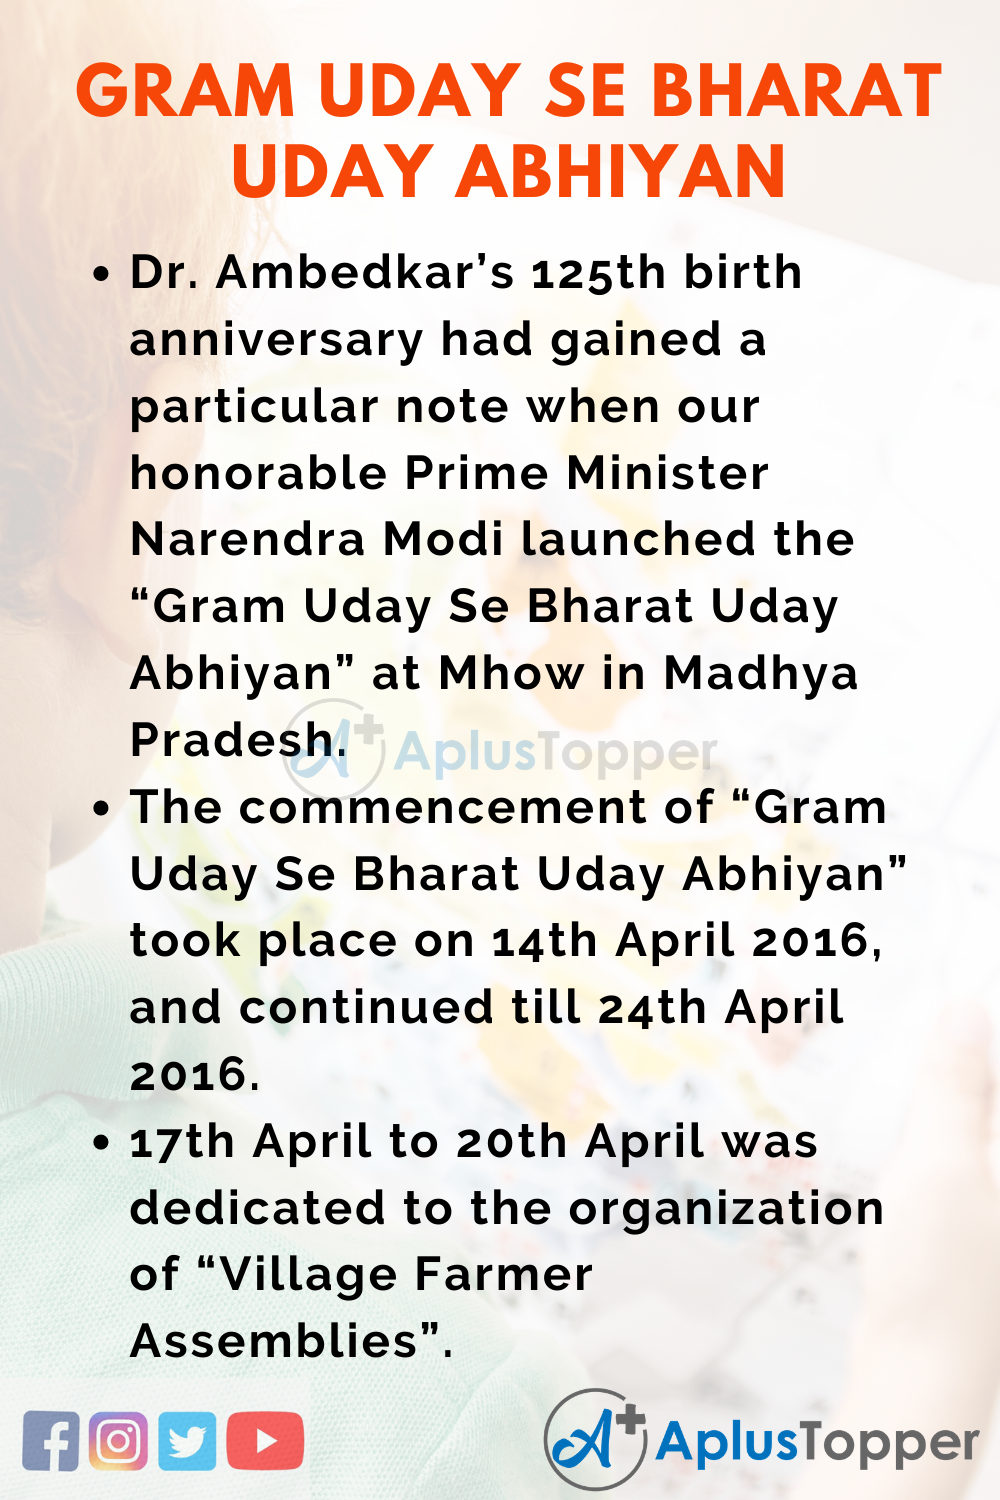 10 Lines on Gram Uday Se Bharat Uday Abhiyan for Higher Class Students